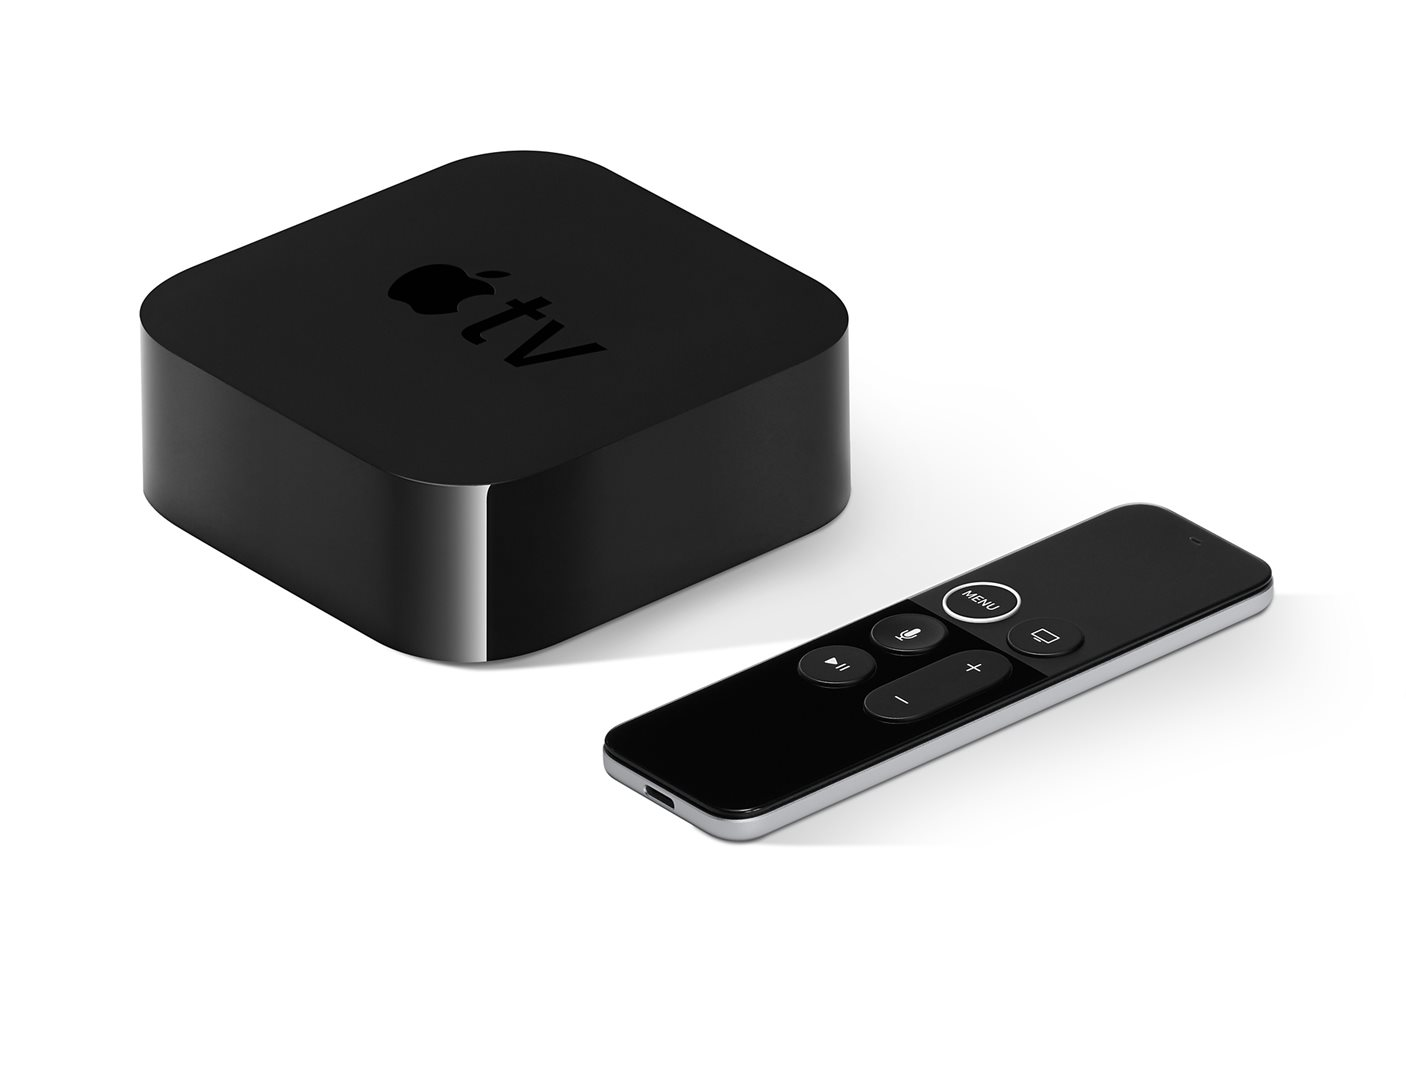 Hodněvěcí.cz - apple-tv-gallery1-201510_s.jpg